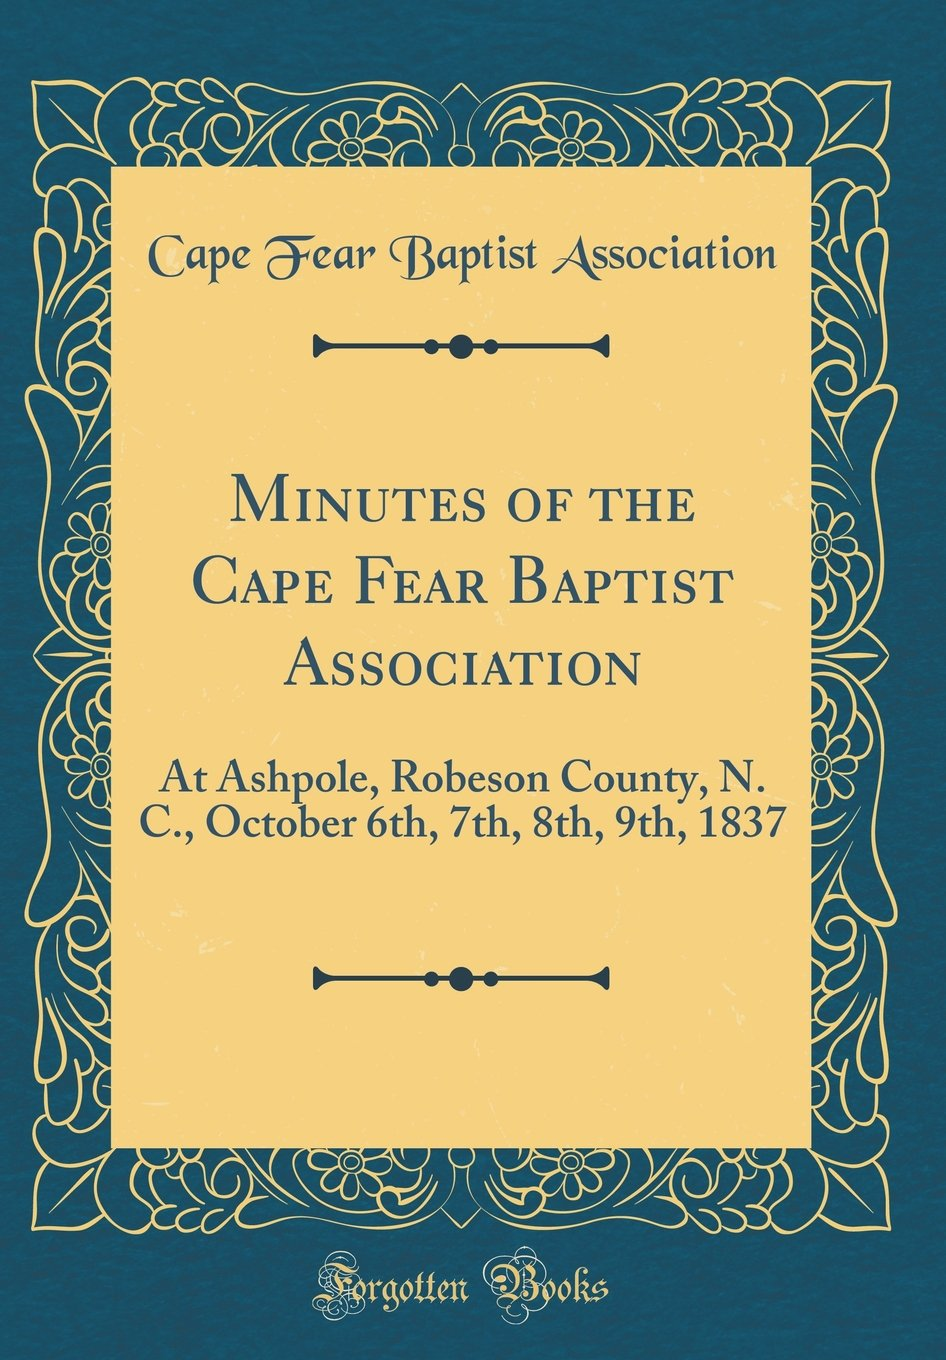 Download Minutes of the Cape Fear Baptist Association: At Ashpole, Robeson County, N. C., October 6th, 7th, 8th, 9th, 1837 (Classic Reprint) pdf